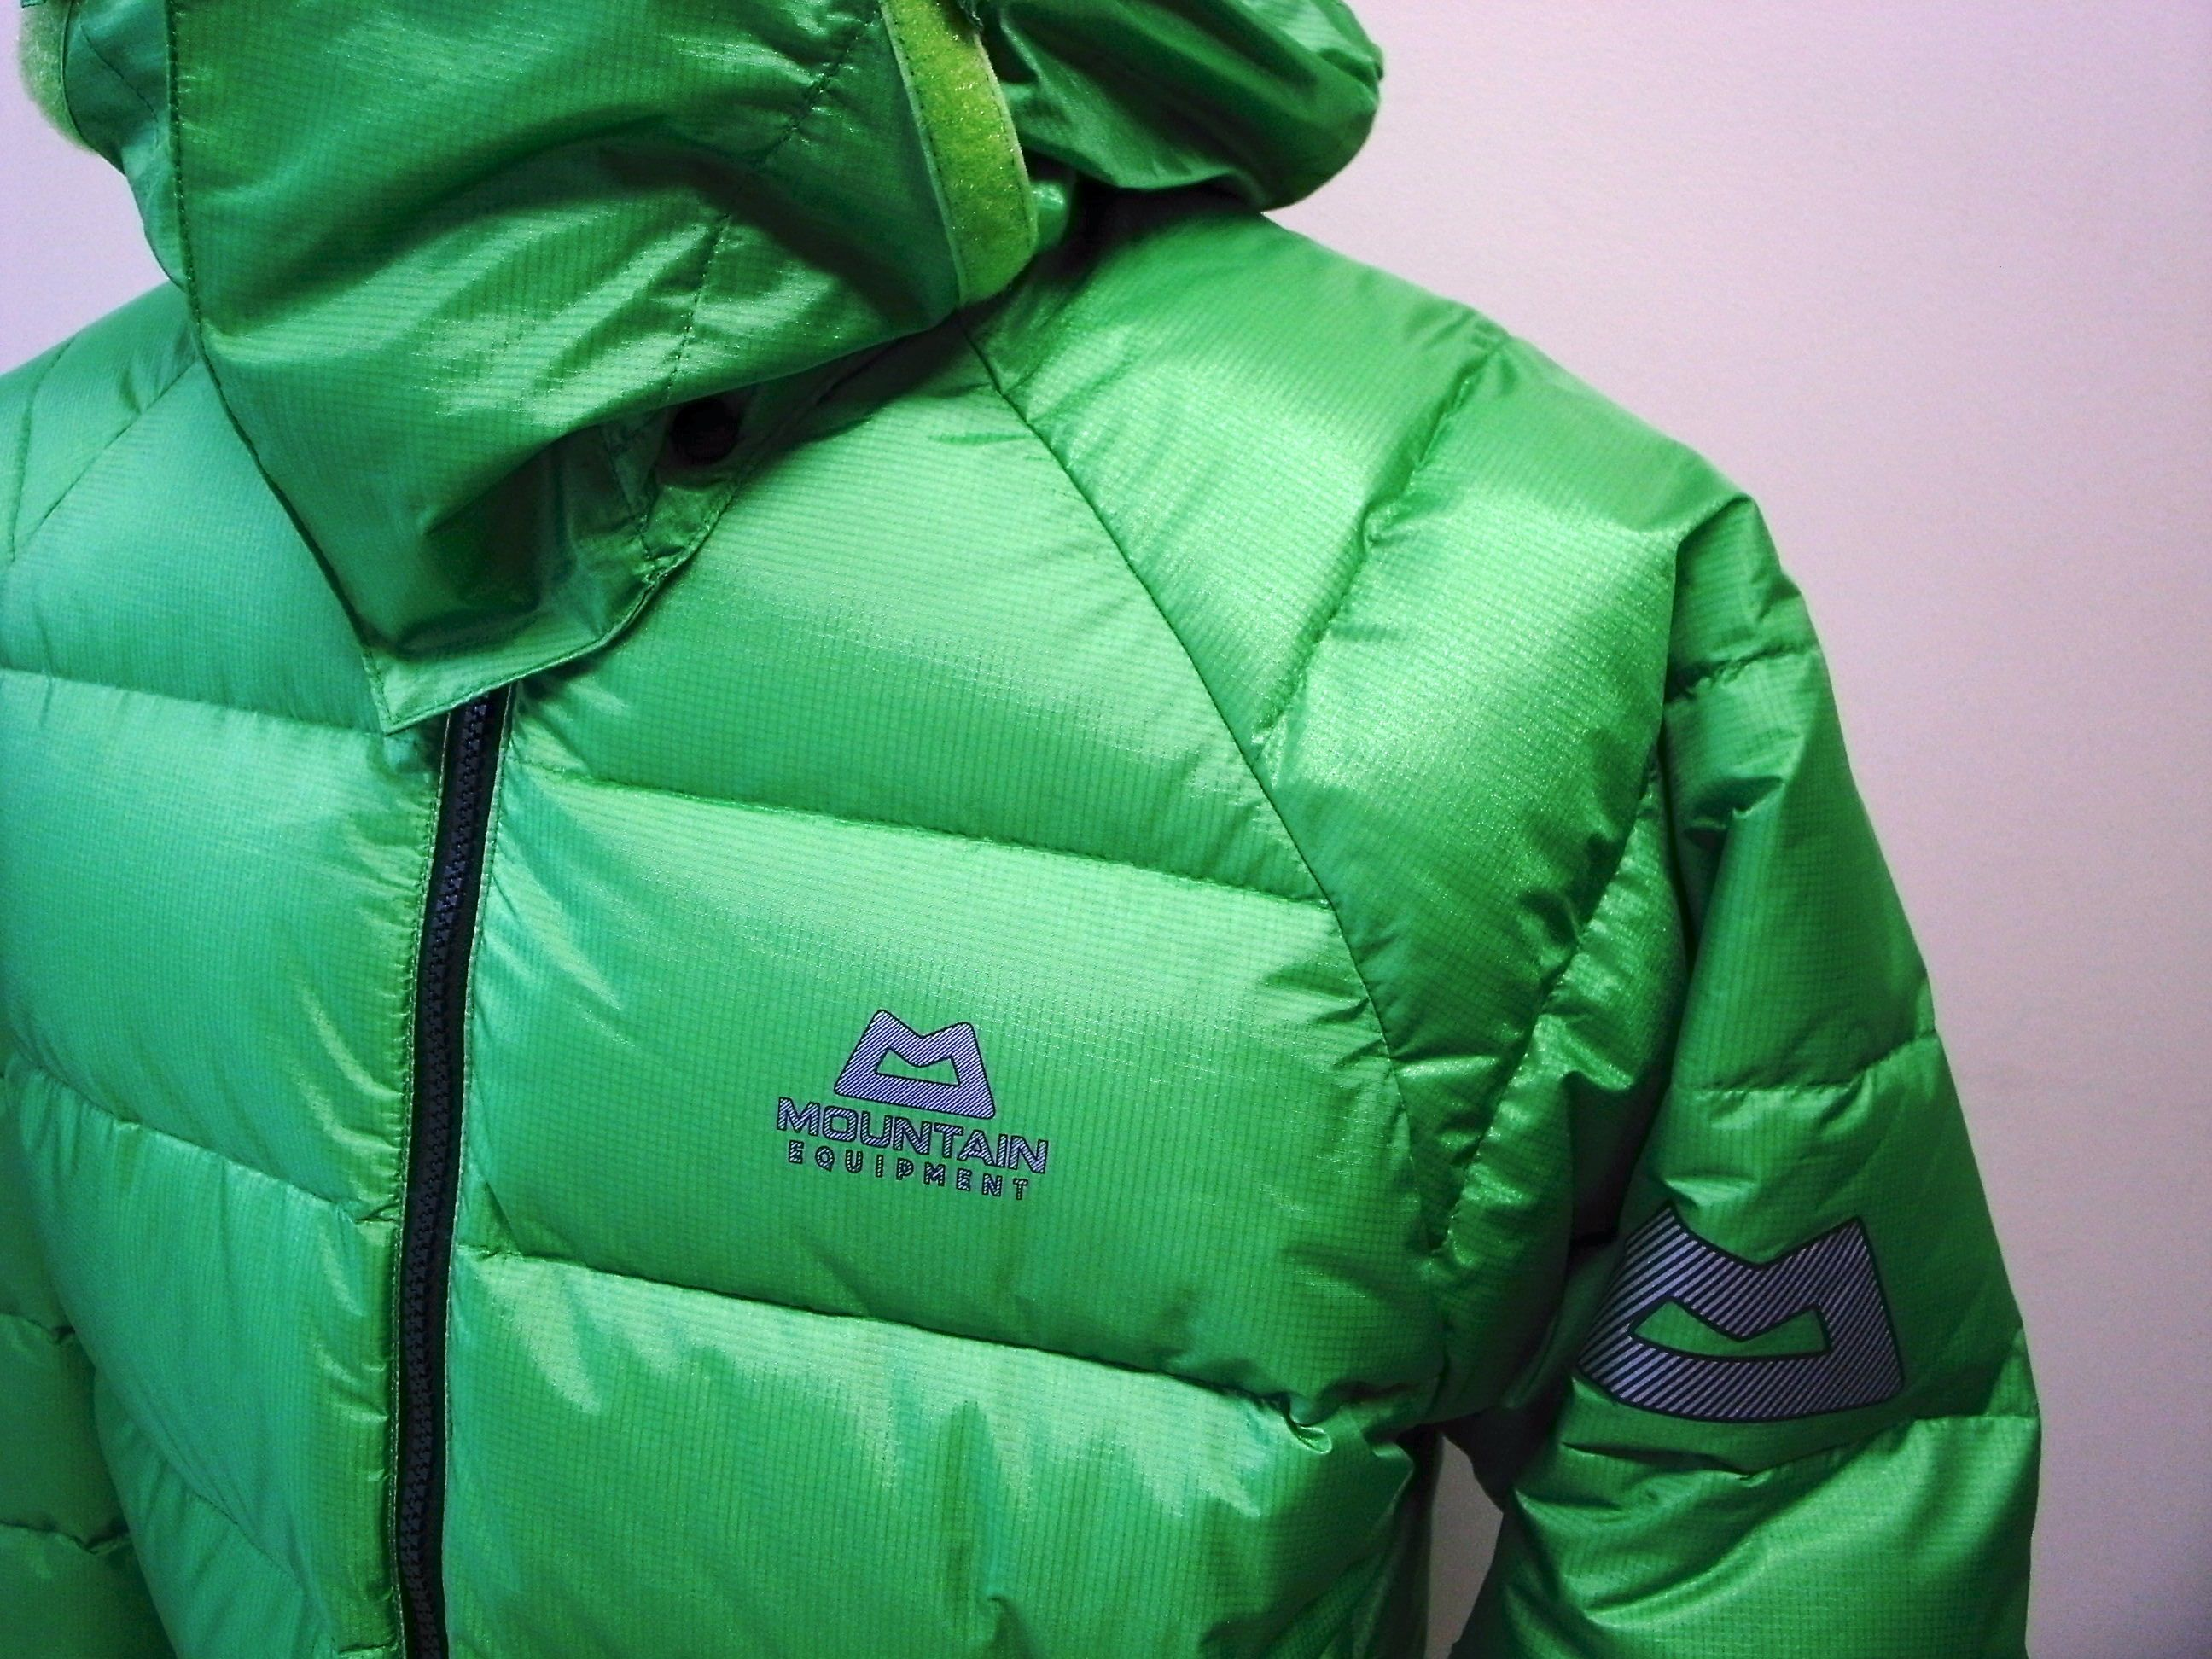 MOUNTAIN EQUIPMENT SNOWDONIA DUVET 160